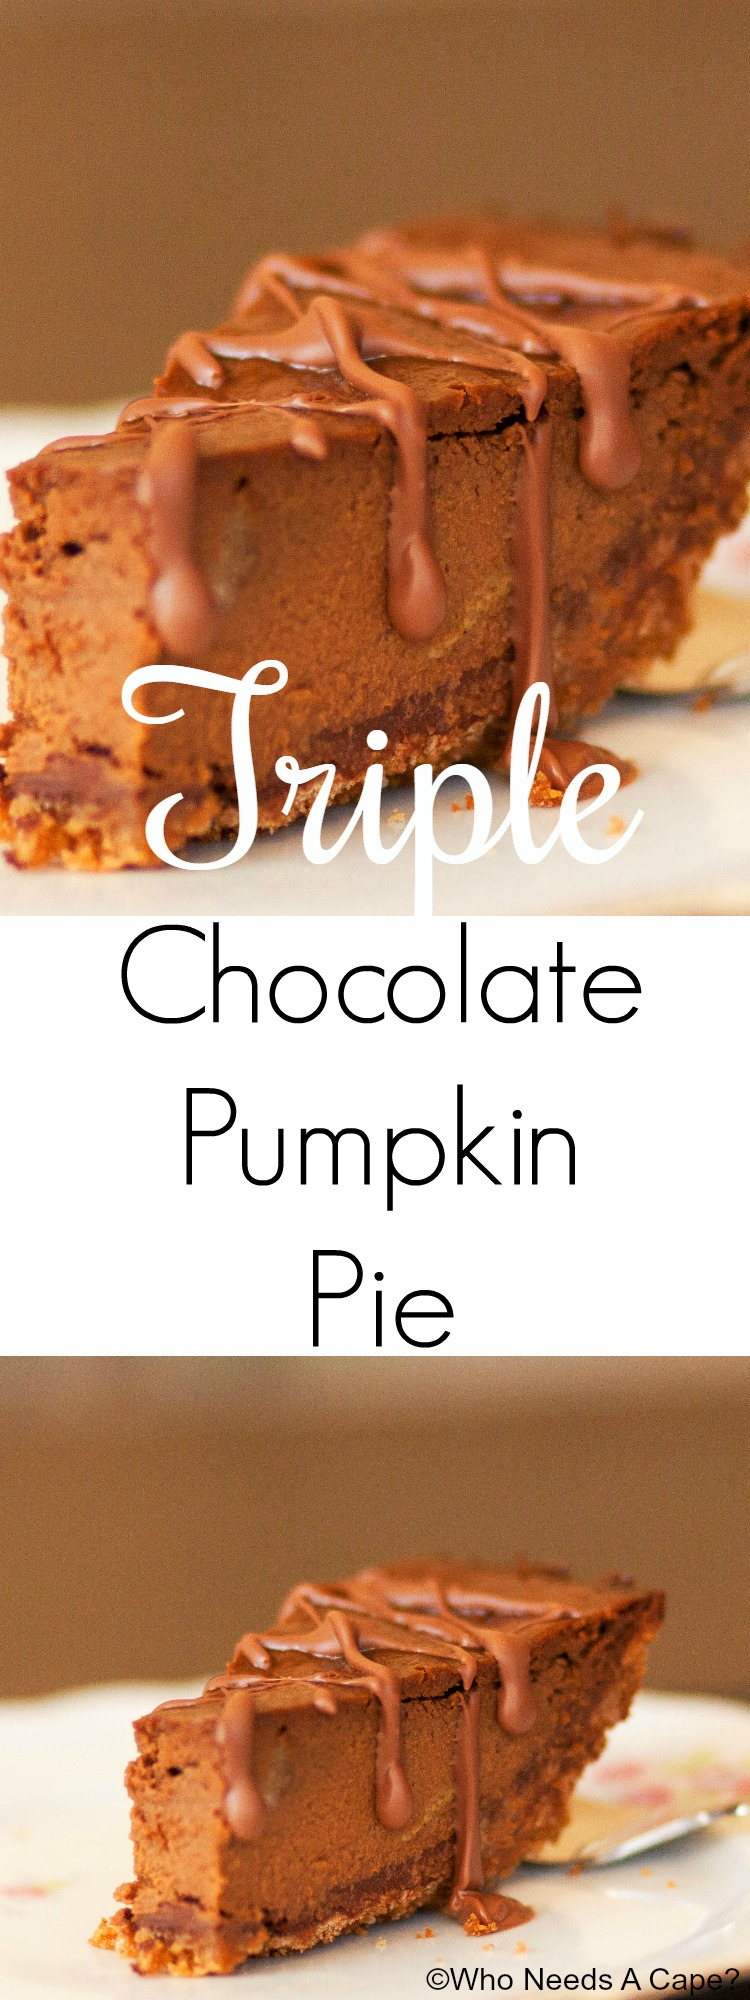 This Triple Chocolate Pumpkin Pie is beyond delicious! You'll love the flavor combinations! The perfect dessert for holiday gatherings and parties.